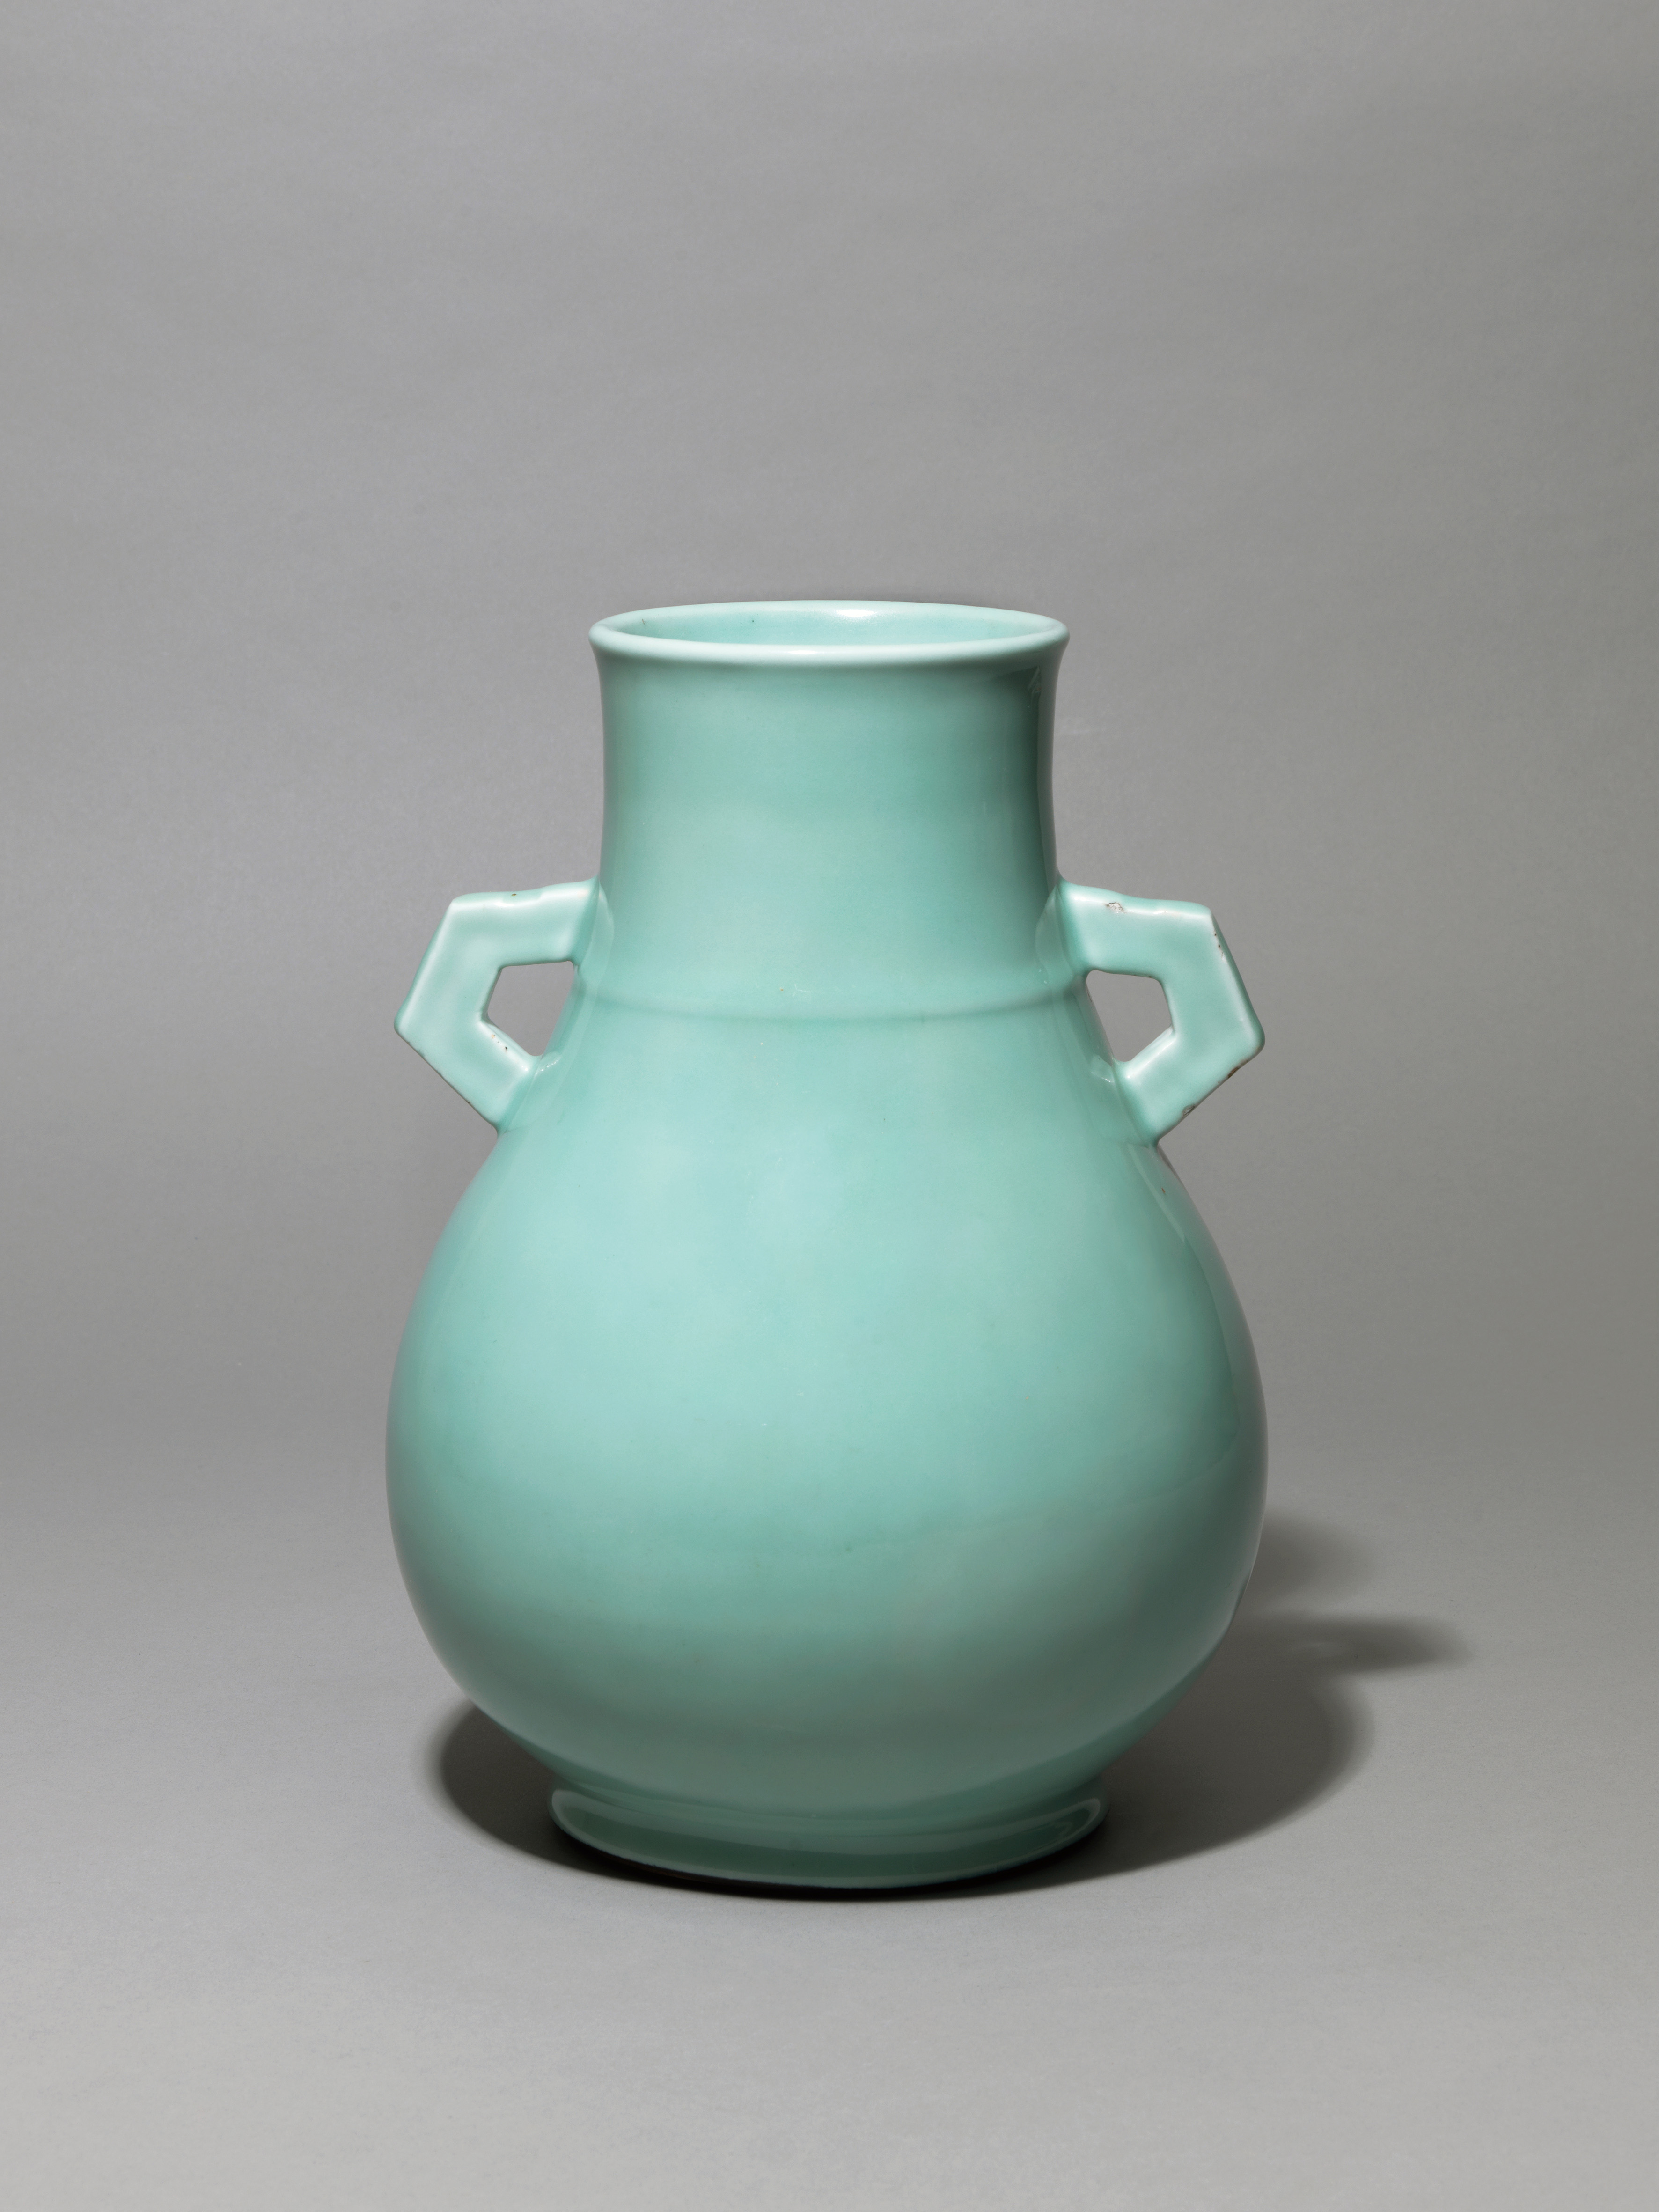 Lot 13 - An archic-form vase decorated with a pale blue Guan-type glaze, Qing Dynasty, Qianlong period